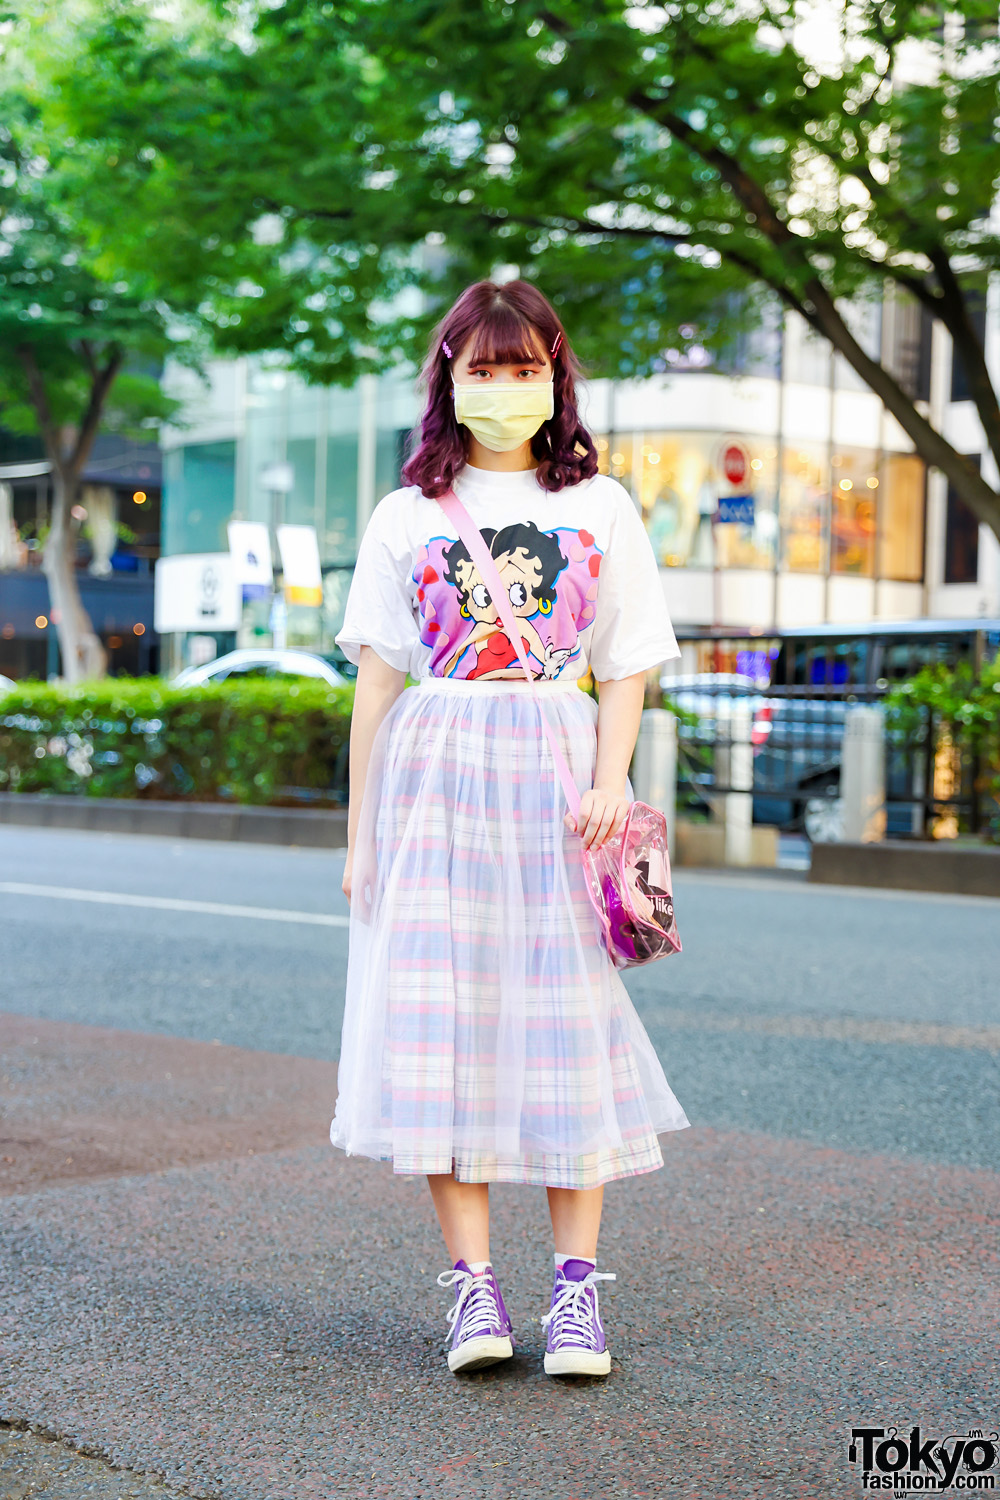 Vintage Street Fashion in Tokyo w/ Purple Hair, Kinji Hair Barrettes, Betty Boop T-Shirt, Layered Skirts, See-Through Bag & Converse Sneakers